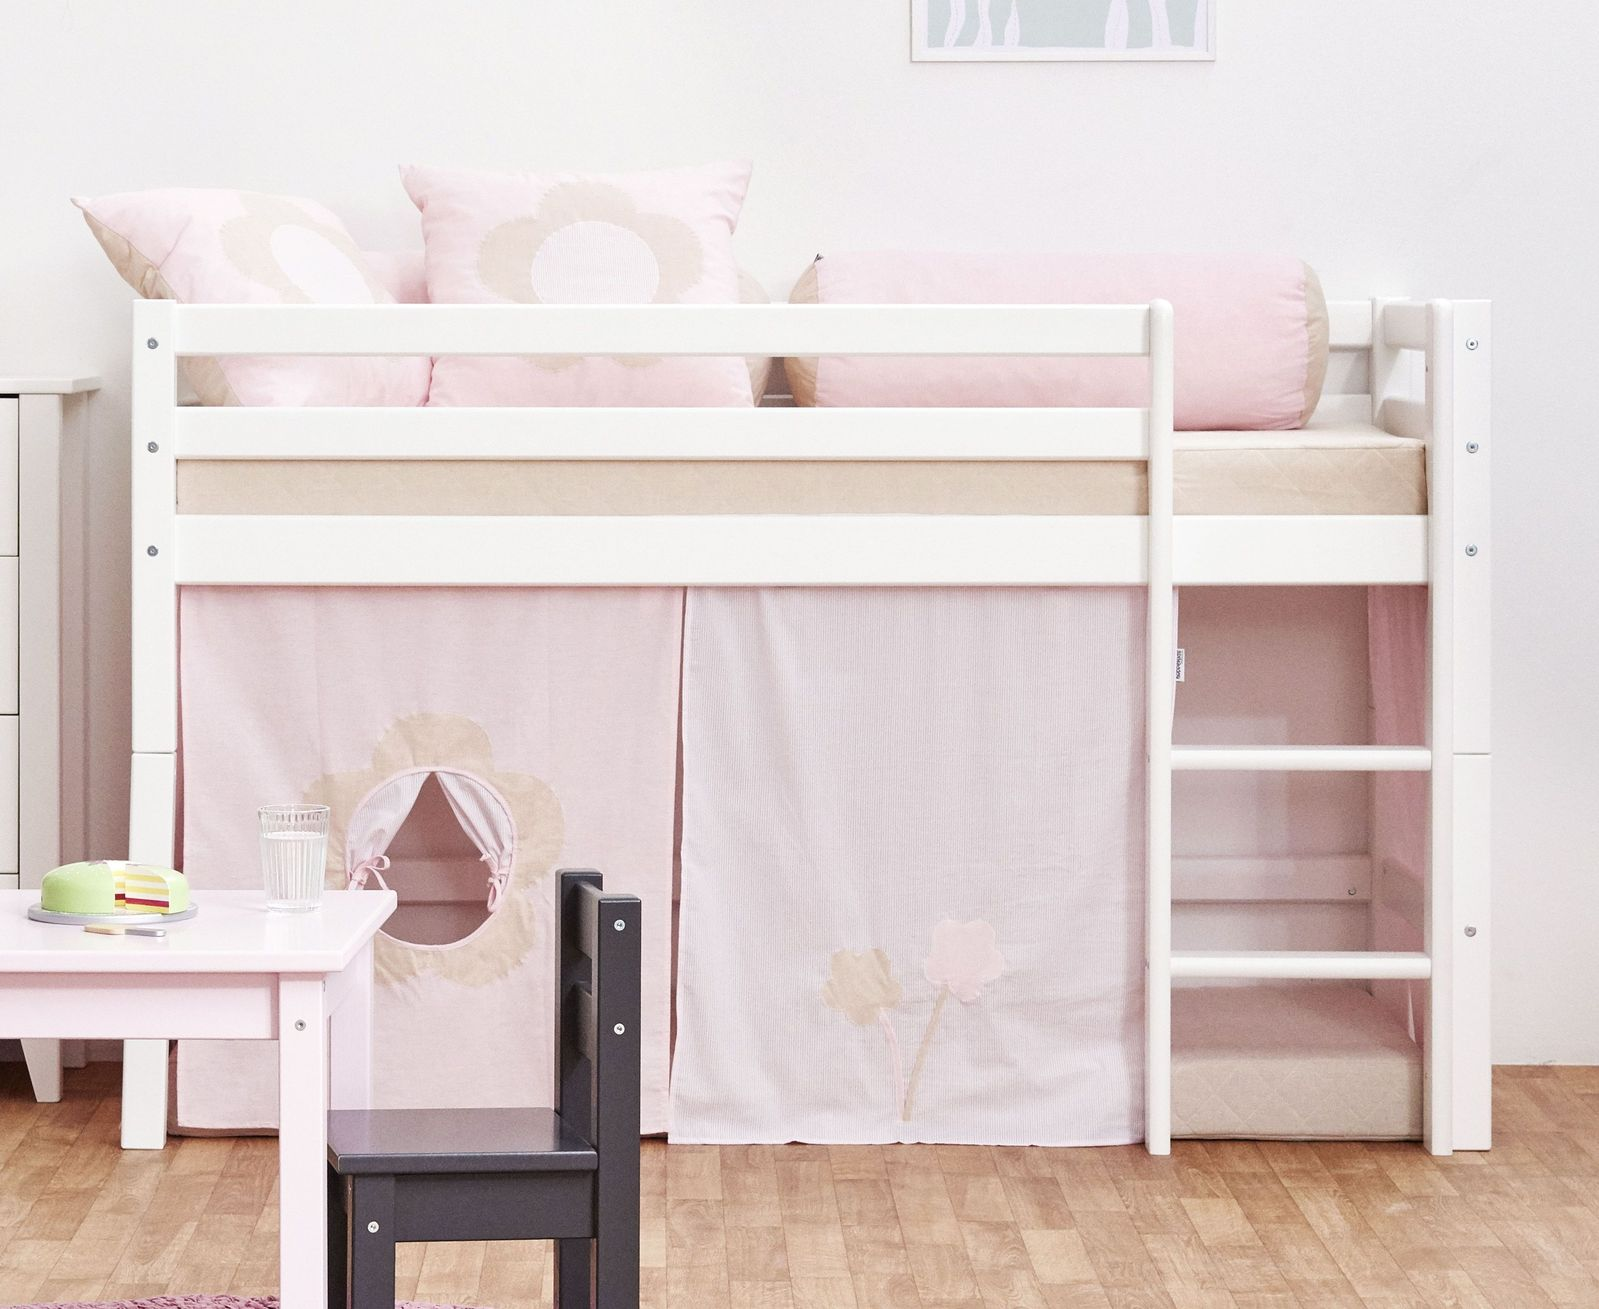 prinzessin bett prinzessin bett kinderbett hngeleuchte wandbild luna homestaging with. Black Bedroom Furniture Sets. Home Design Ideas